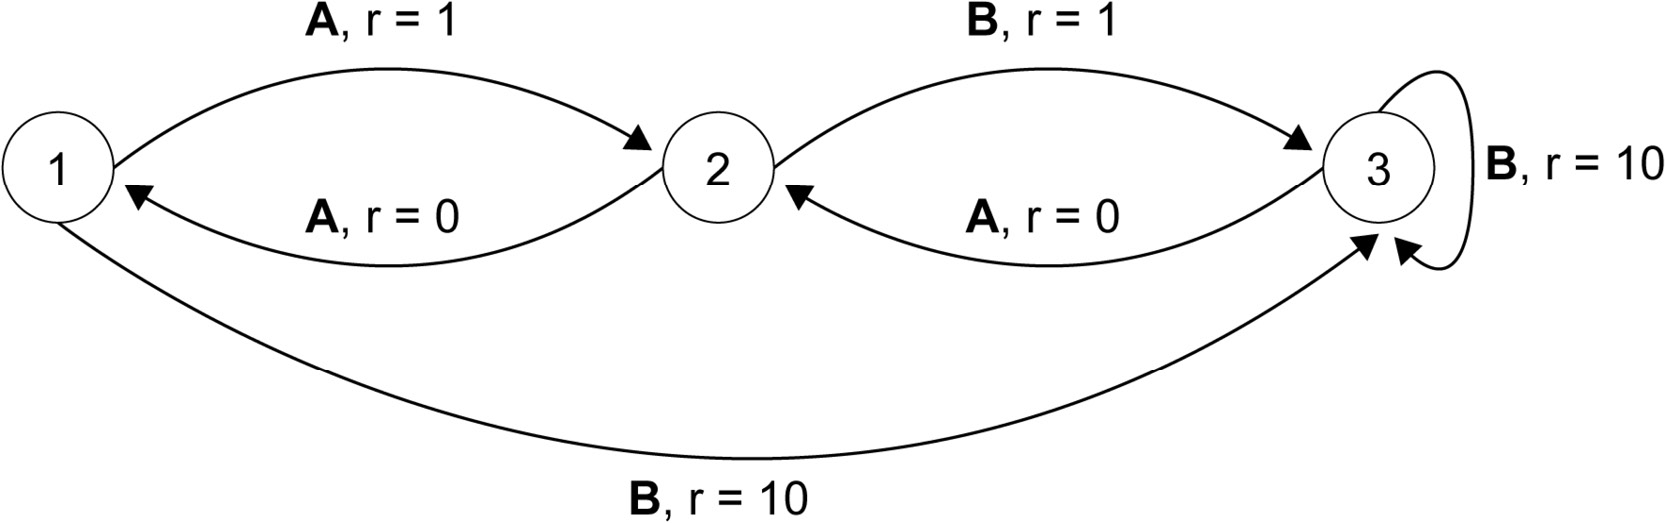 Figure 1.11: A toy environment composed of three states (1, 2, 3) and two actions (A and B)